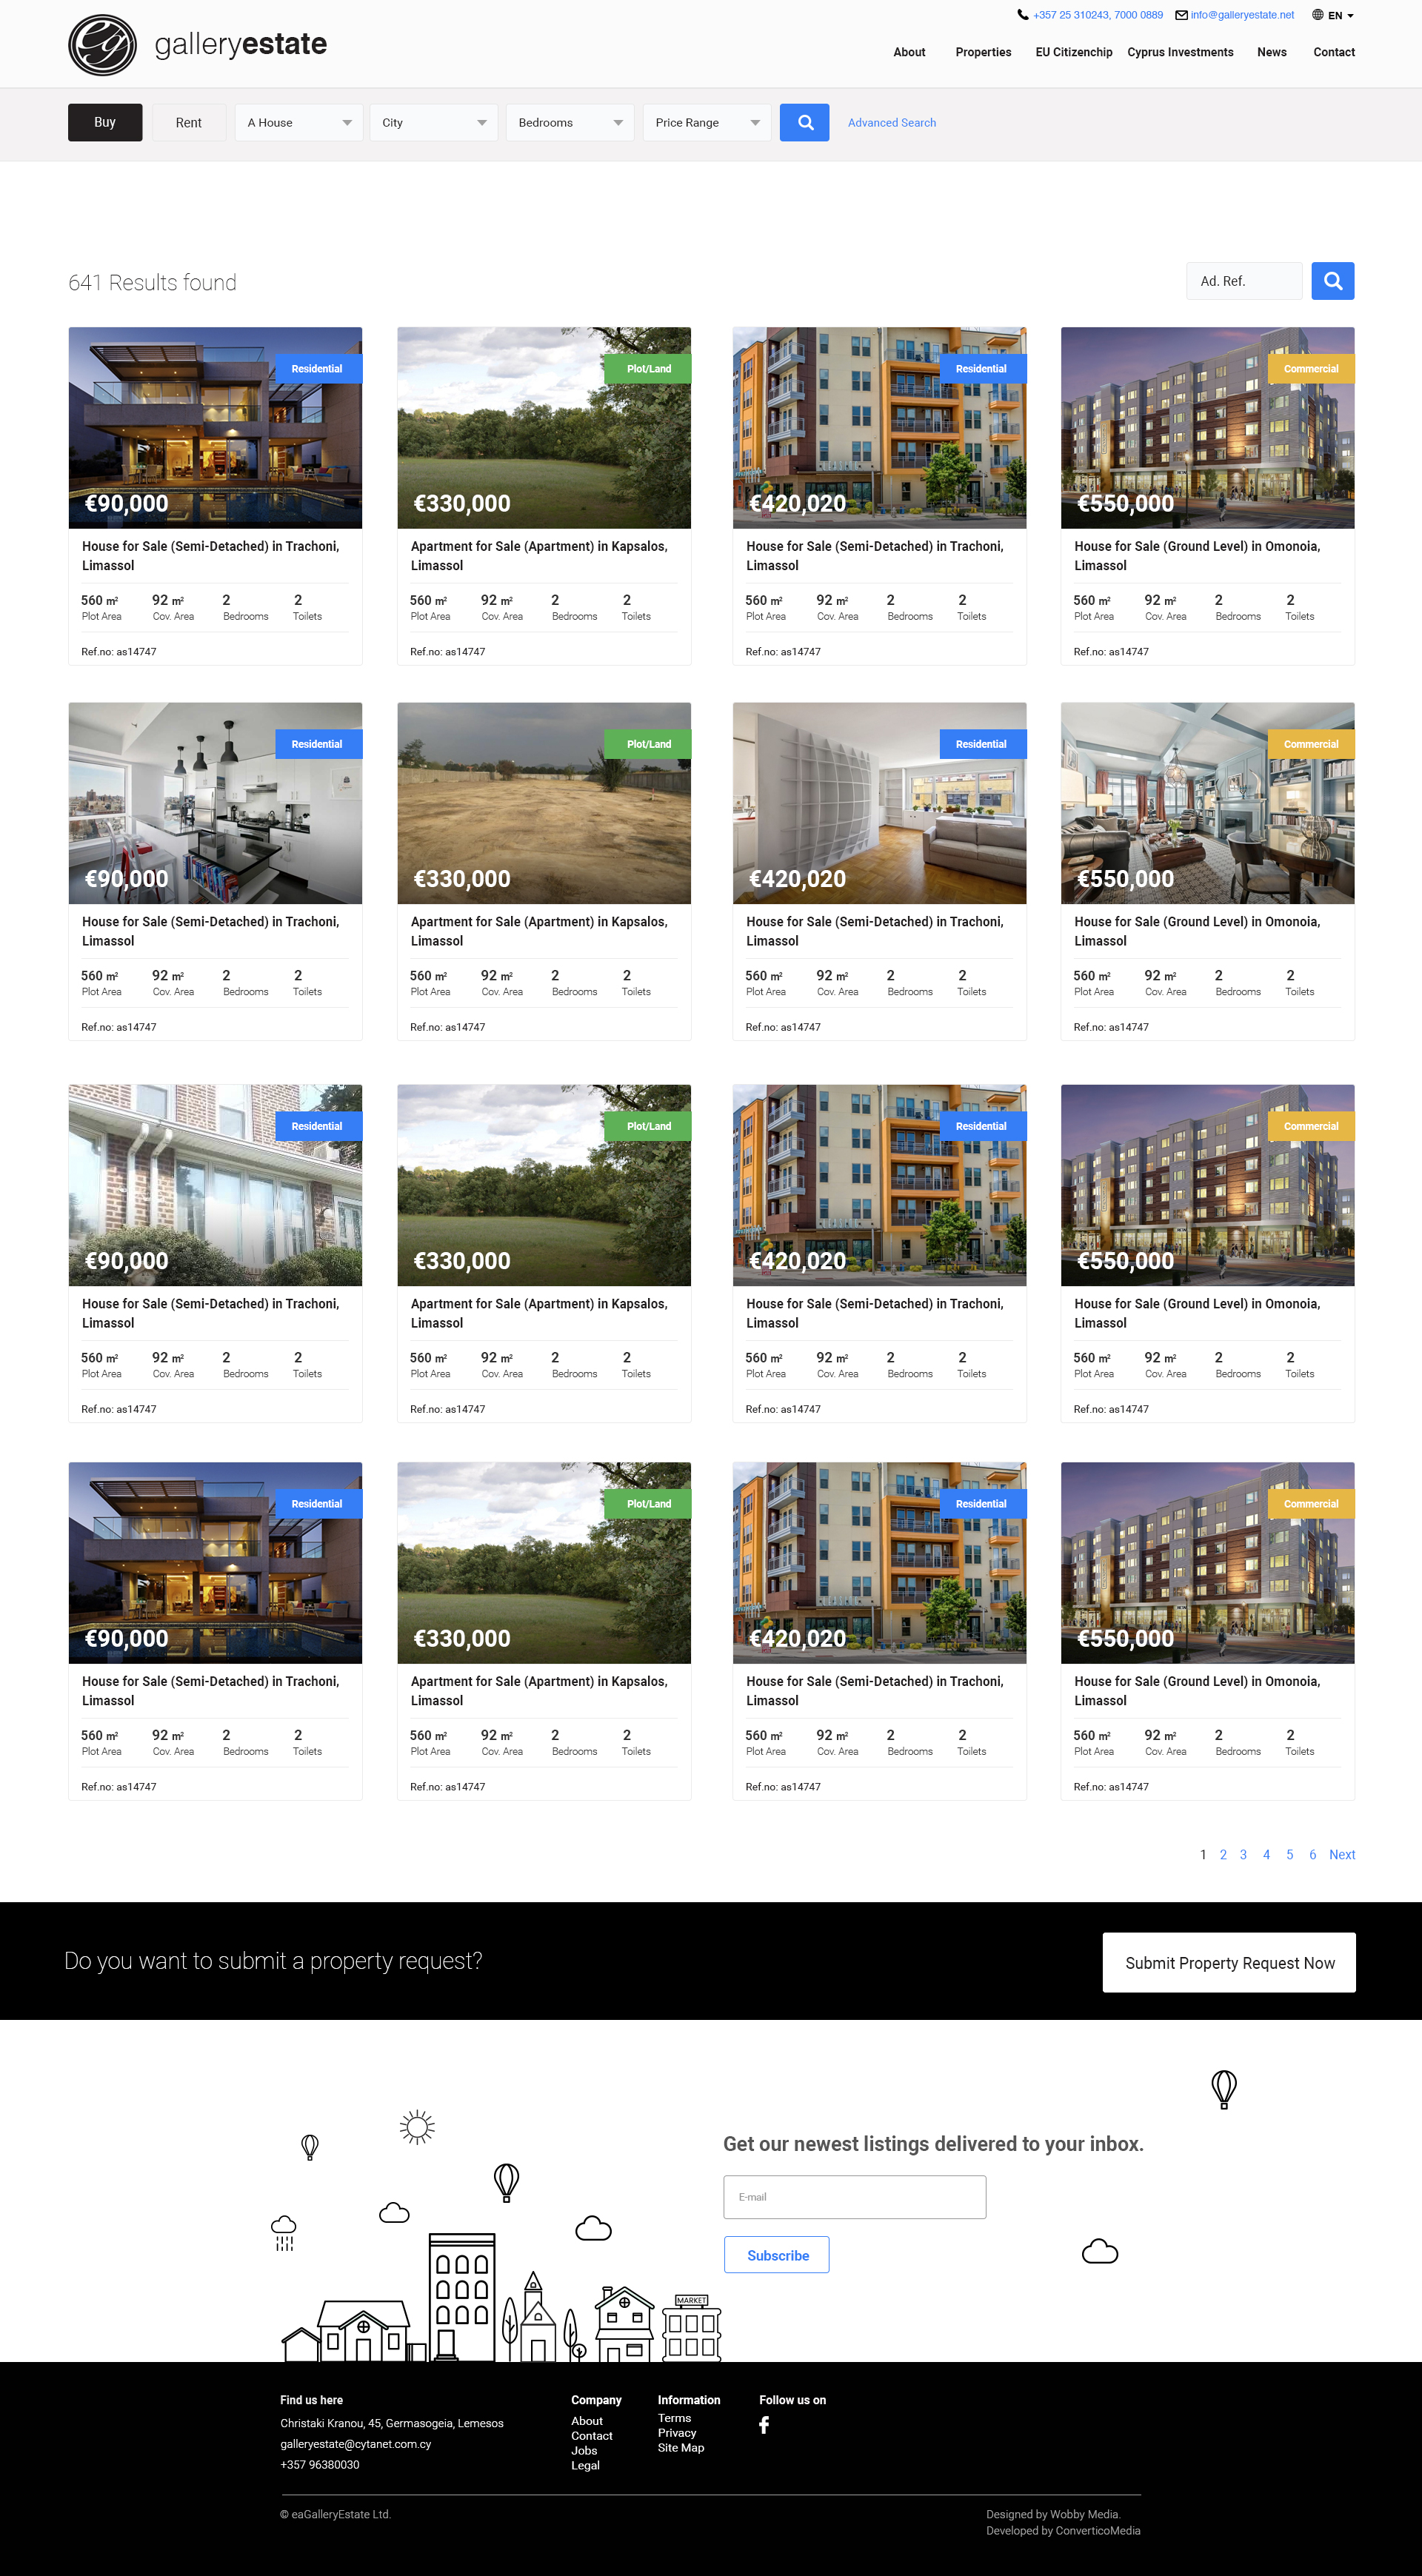 eagallery-home-all-properties